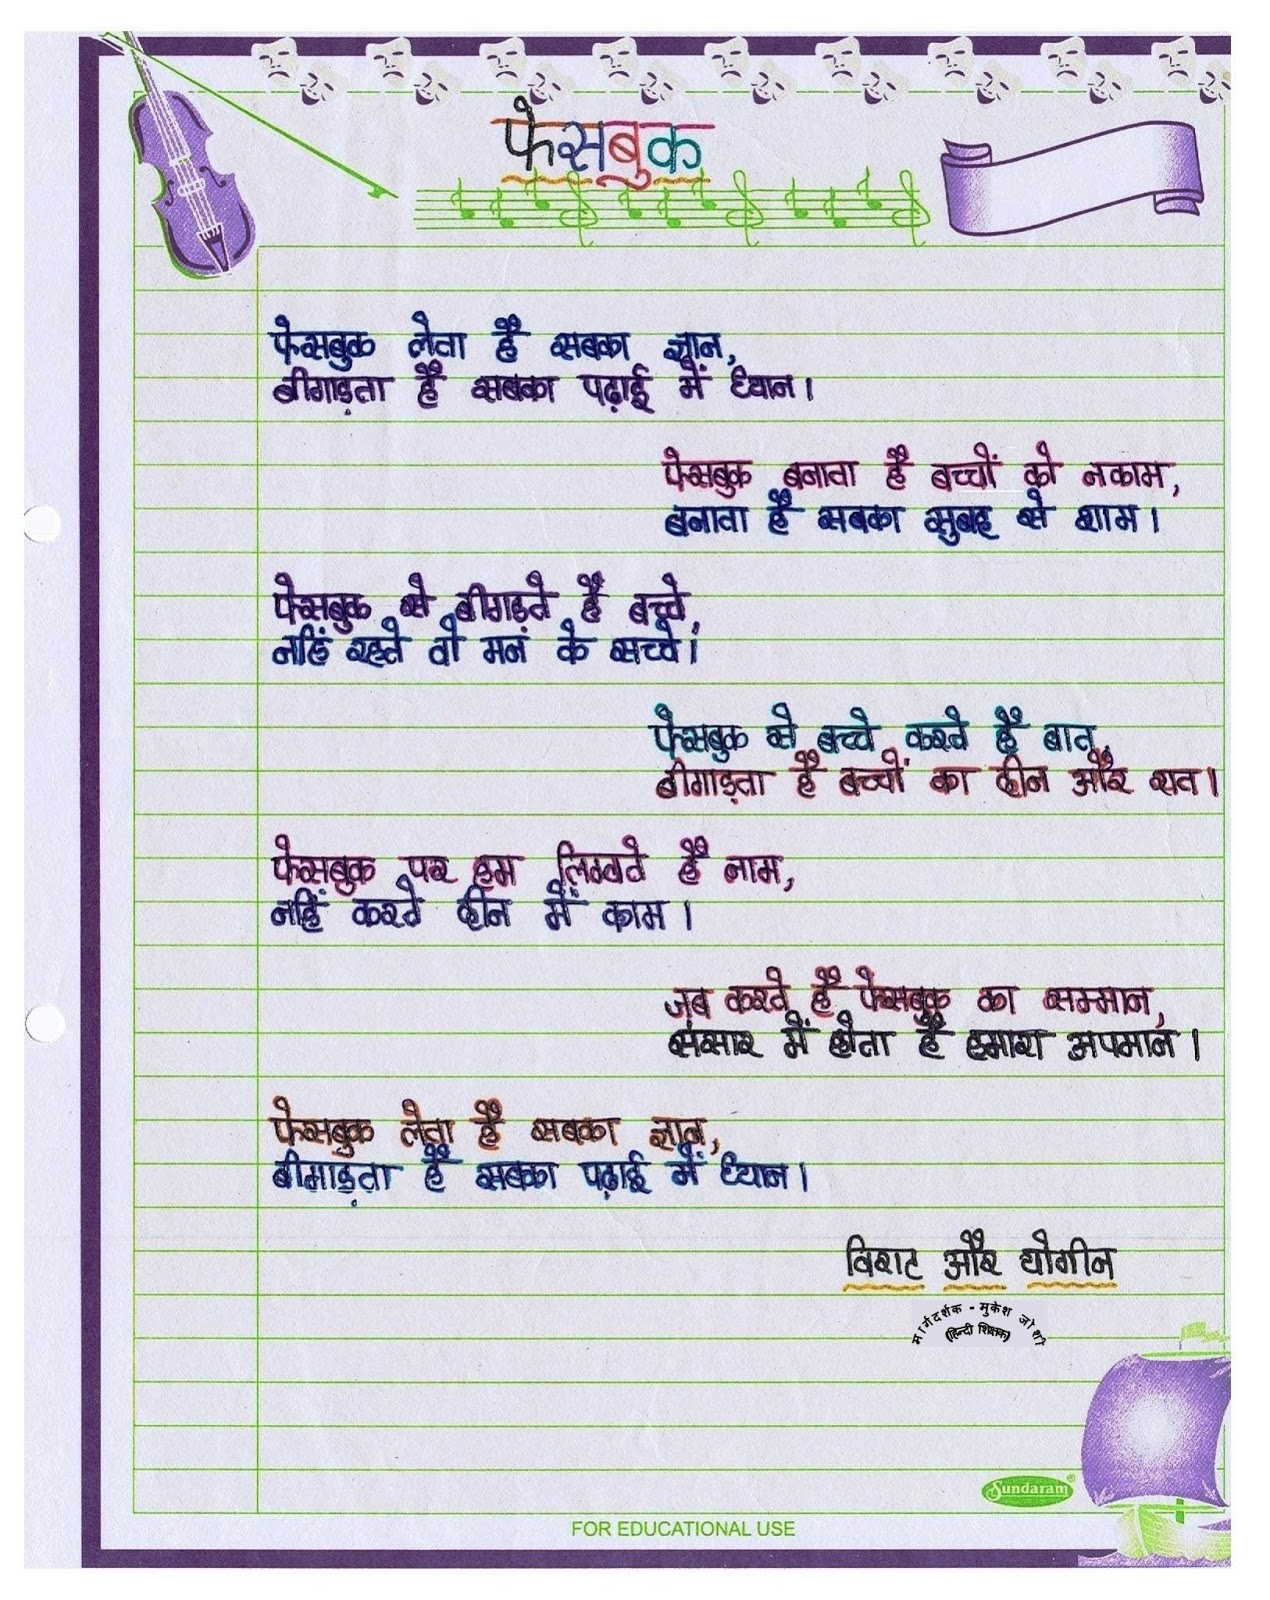 hindi grade 9 Free downloadable ncert solutions for class 9 hindi from ncert textbook (क्षितिज, भाग 1 ncert solution) homework help with chapter-wise solutions.